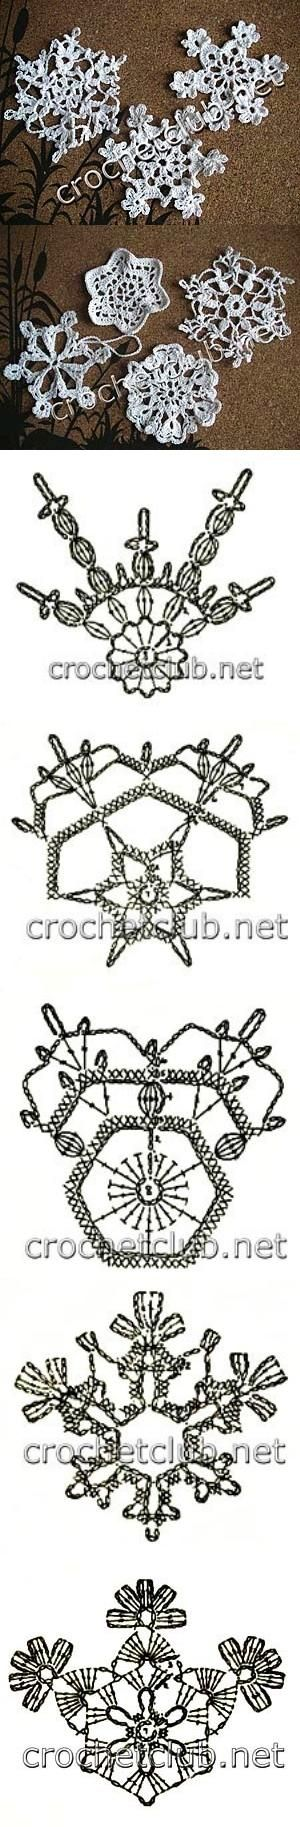 Free crochet snowflake ornament patterns.